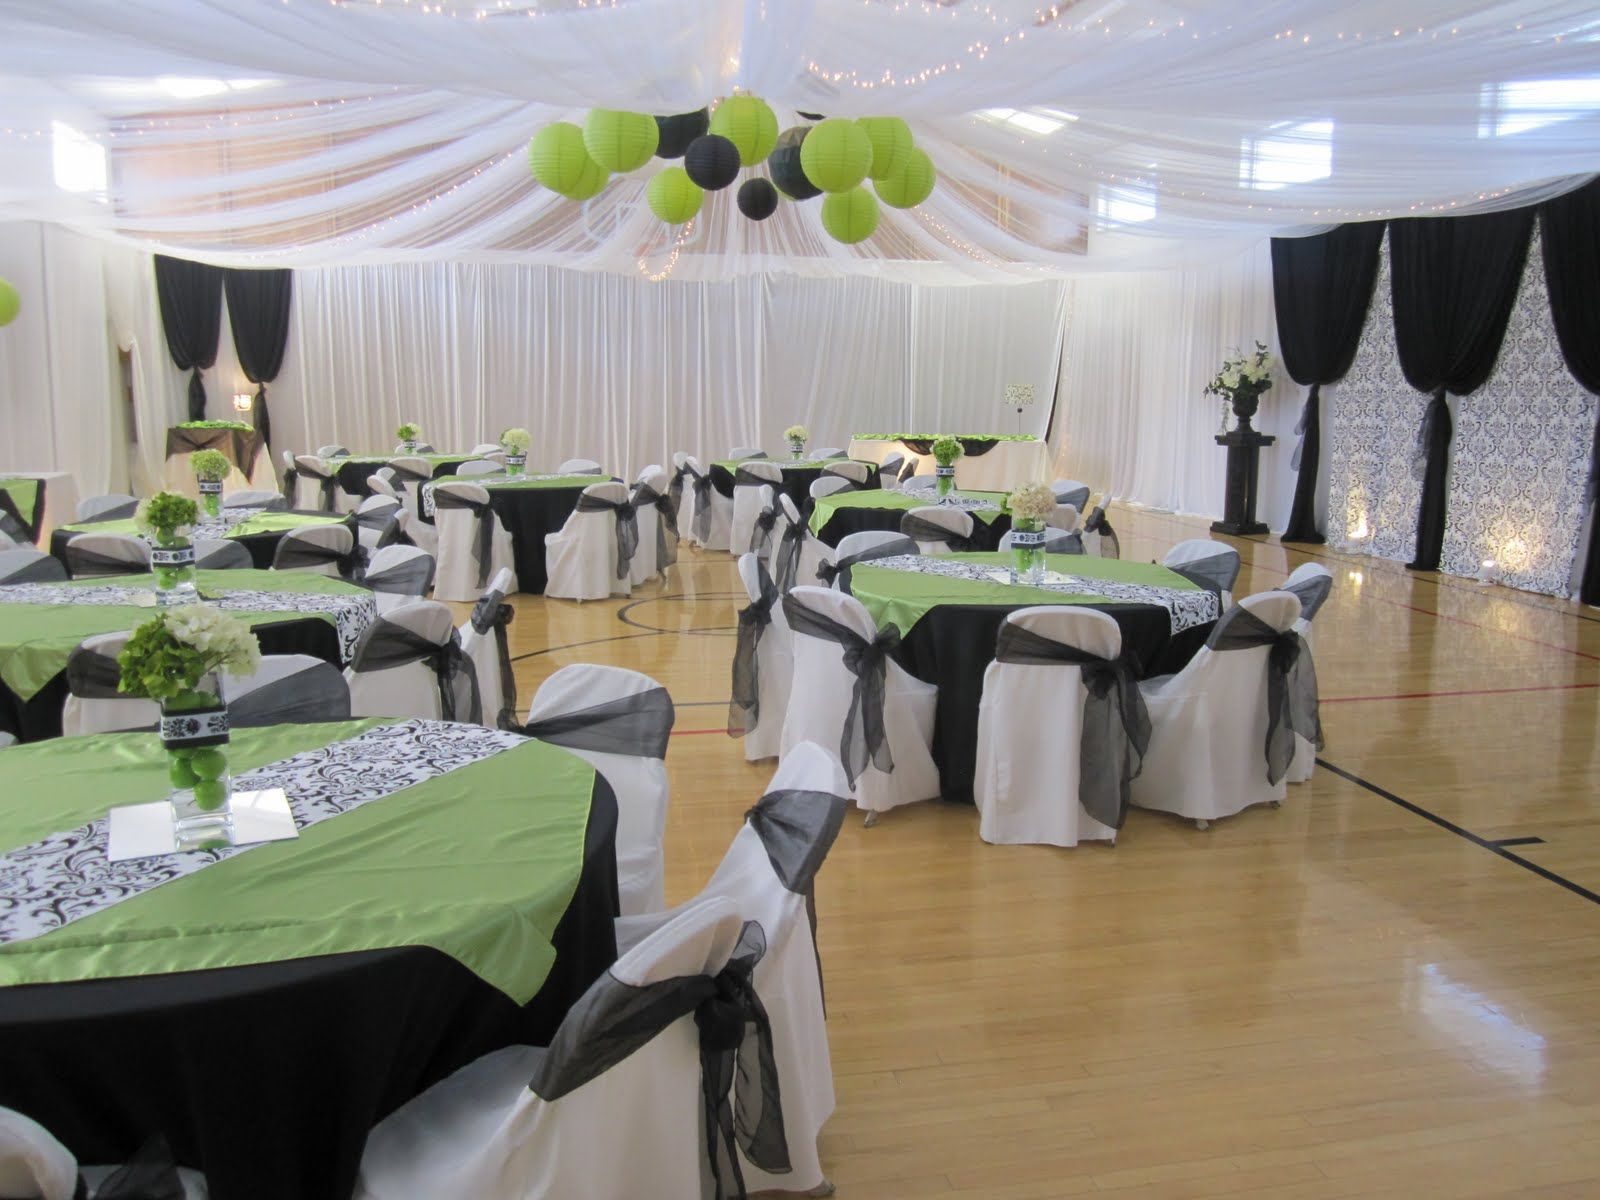 Wedding reception in a gym ideas wedding reception for Simple wedding decoration ideas for reception